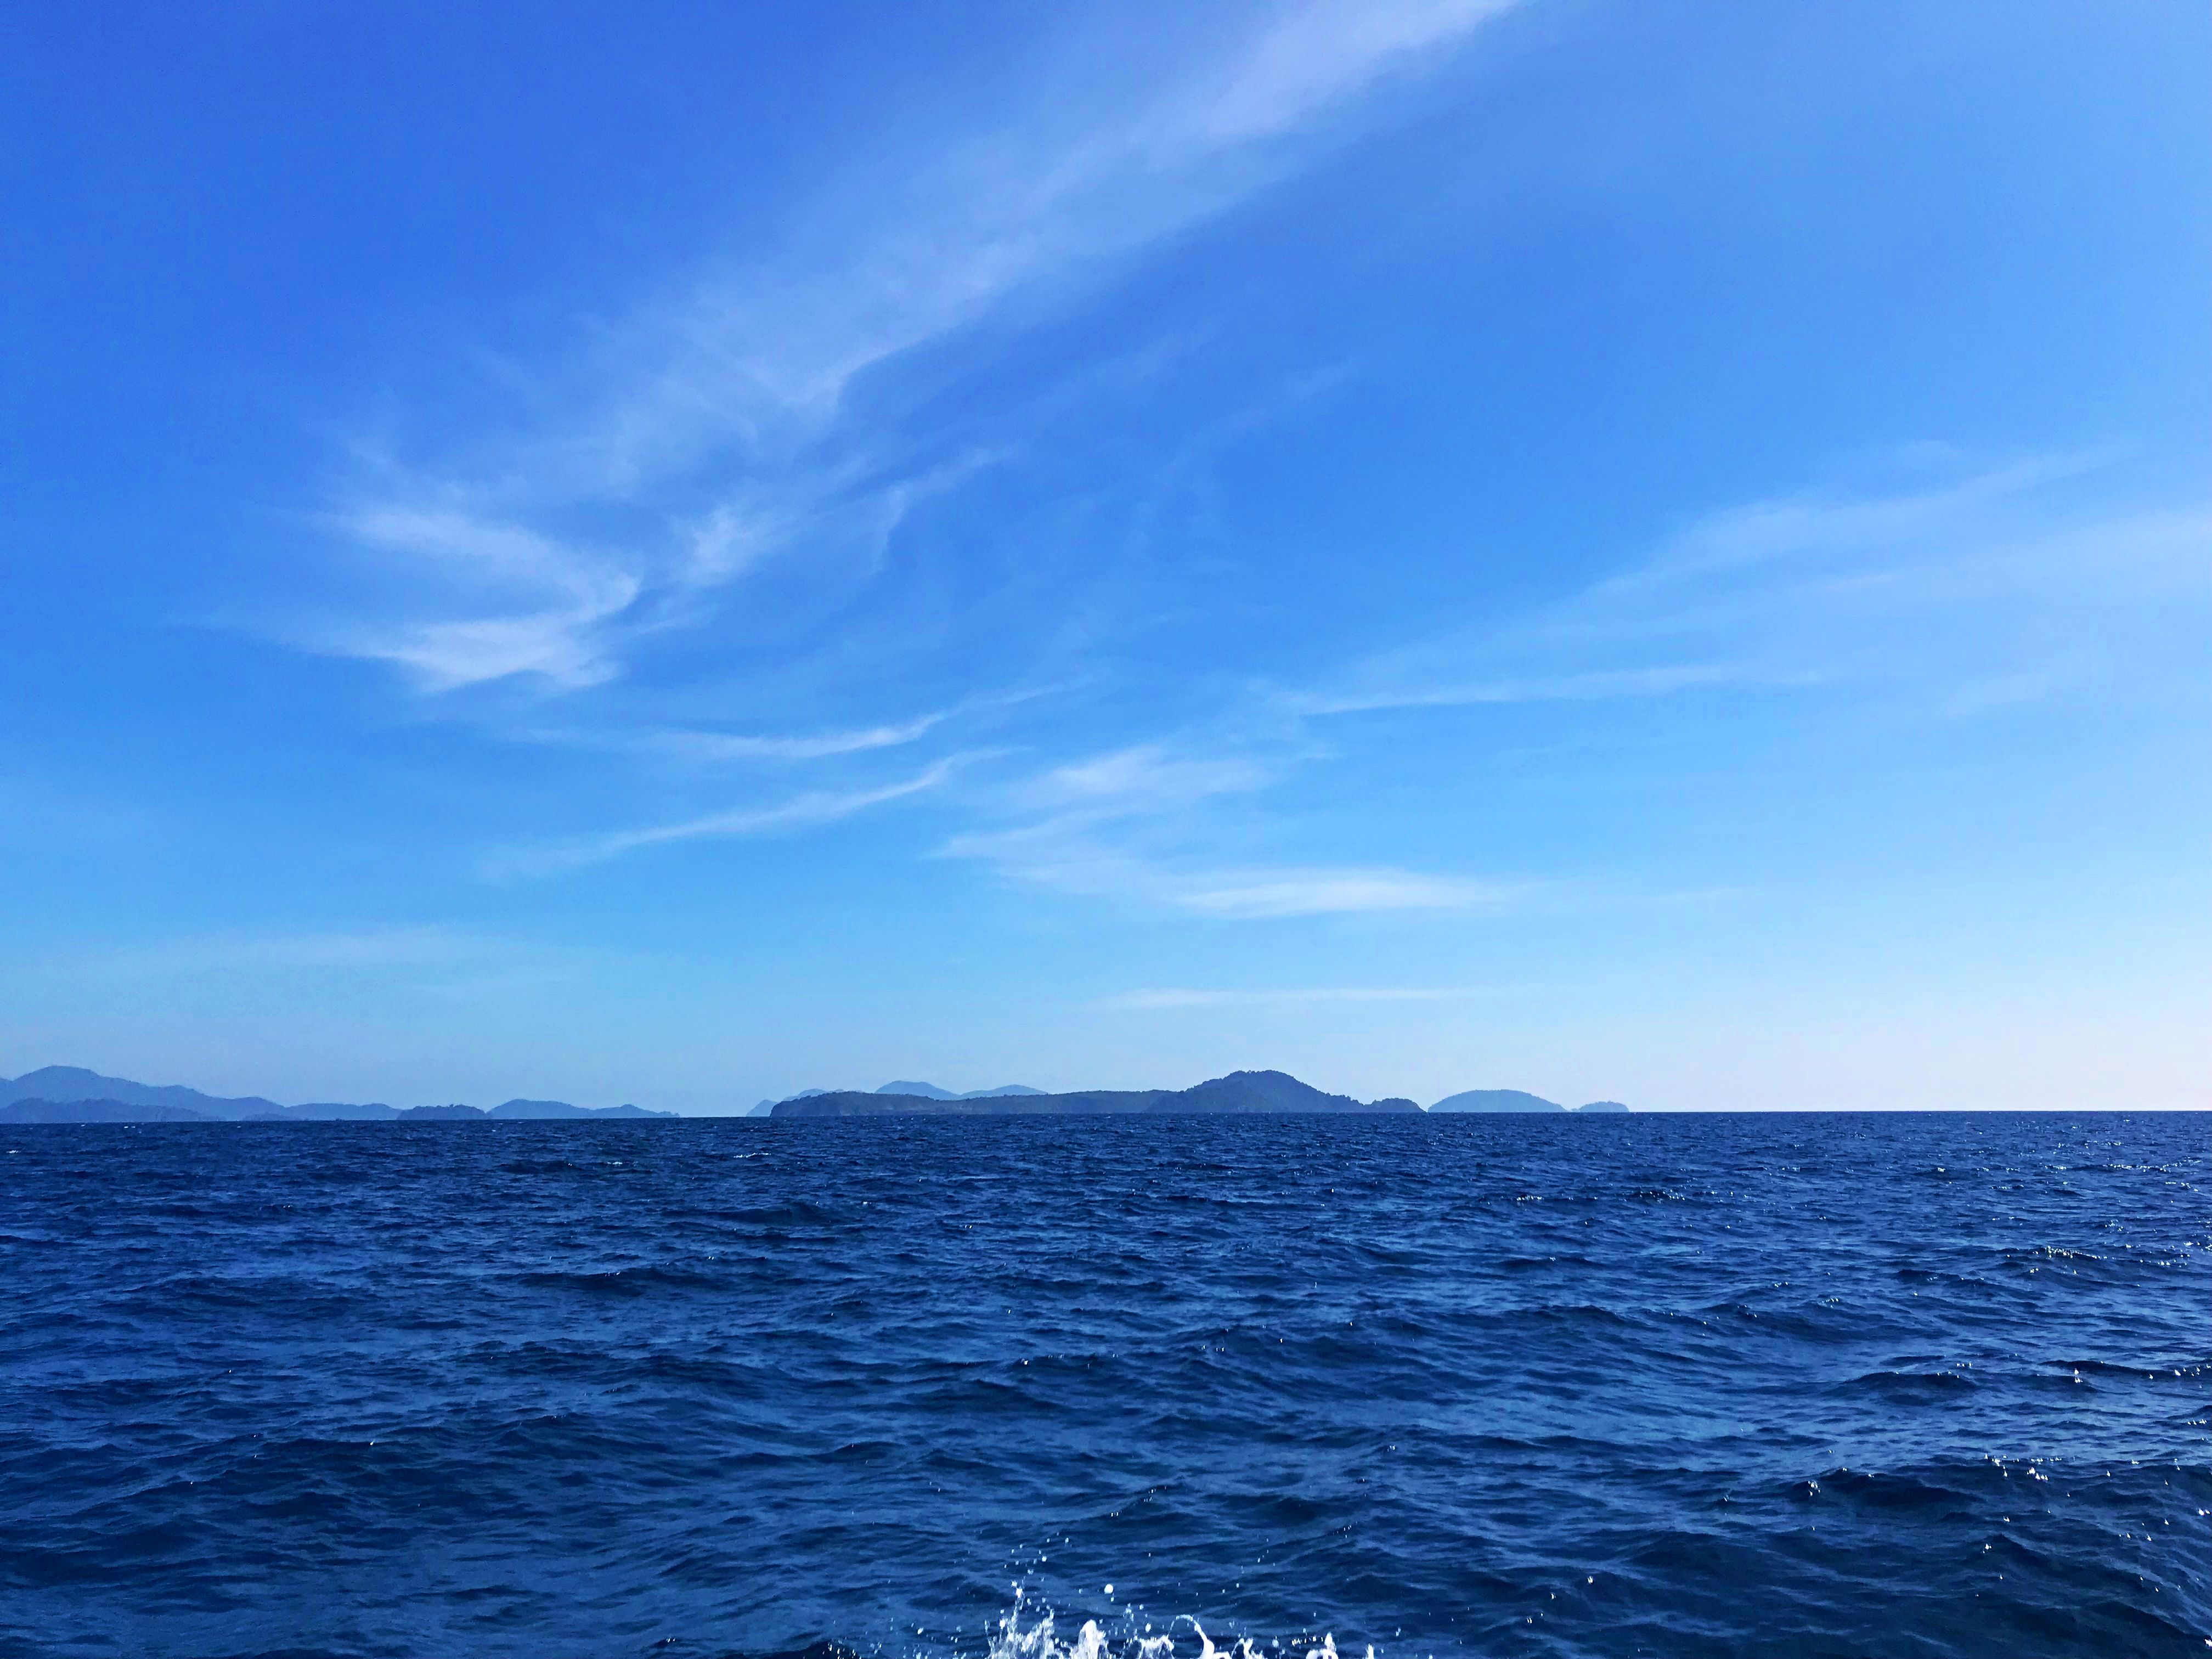 The Blue Sea And The Blue Sky Cloud With Big Island At Horizon Sskevinjet Shotoniphone Photography Landscape Landscapephotography Travel Travelphotograph